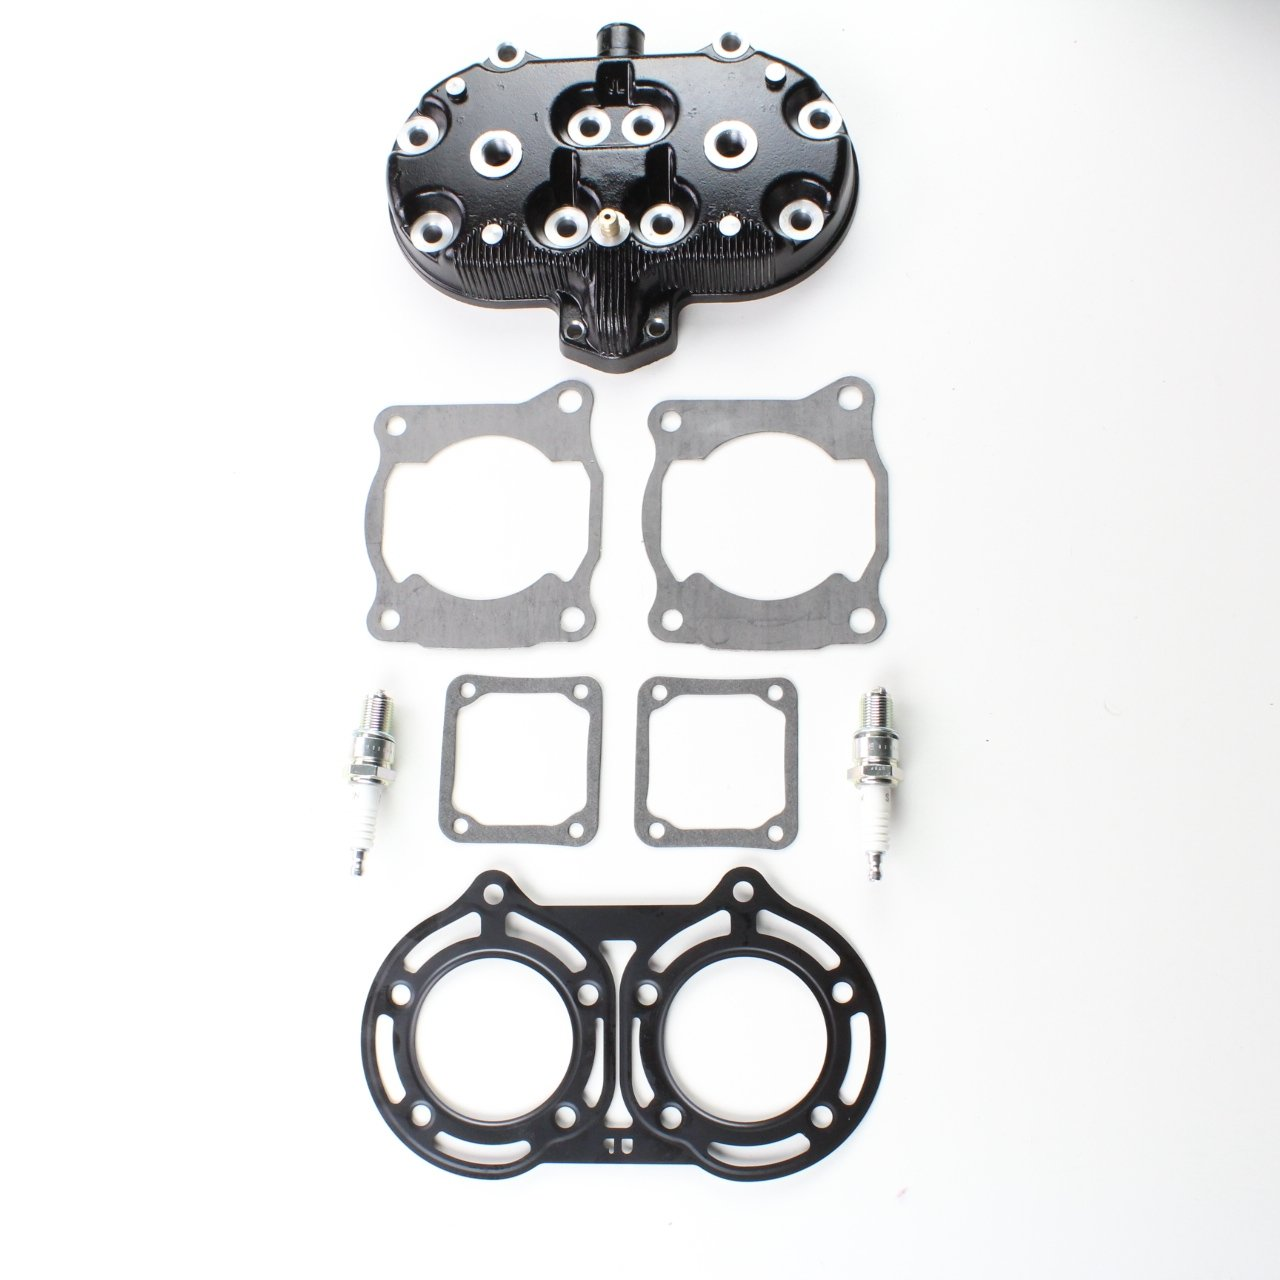 NICHE Cylinder Head Gasket Kit for Yamaha Banshee 350 1987-2006 Niche Industries